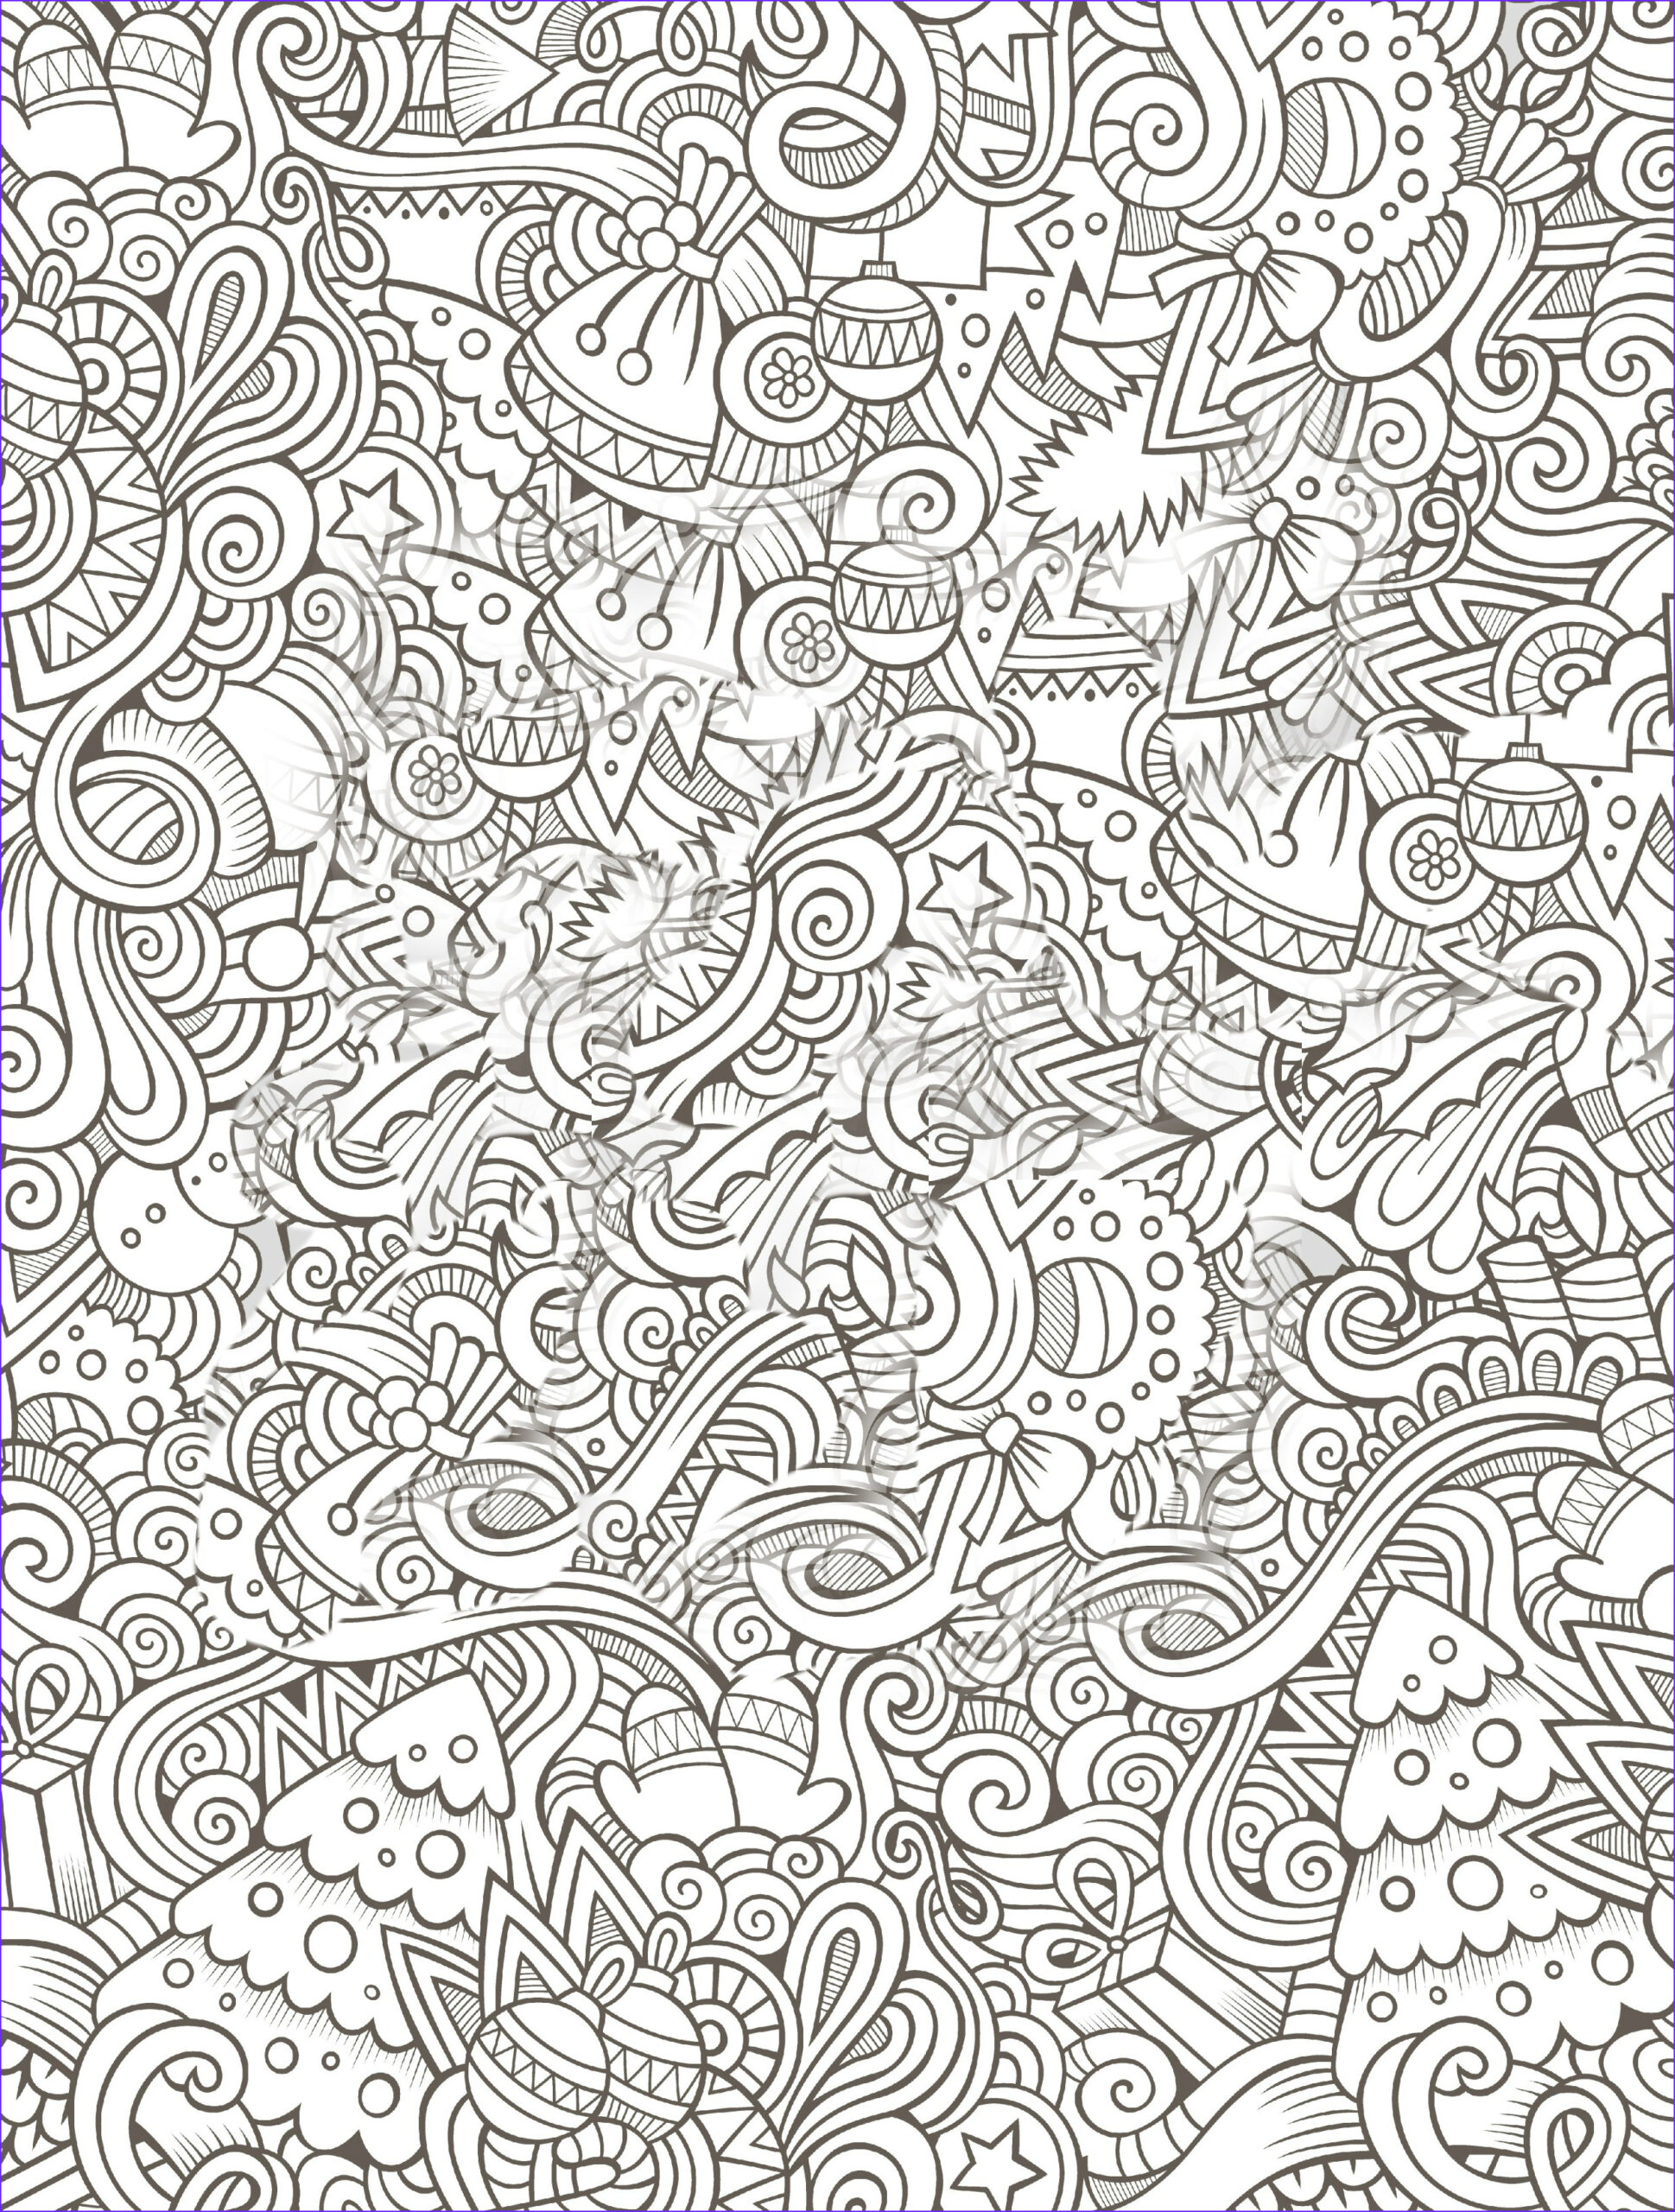 Free Coloring Pages Pdf Inspirational Image 10 Free Printable Holiday Adult Coloring Pages